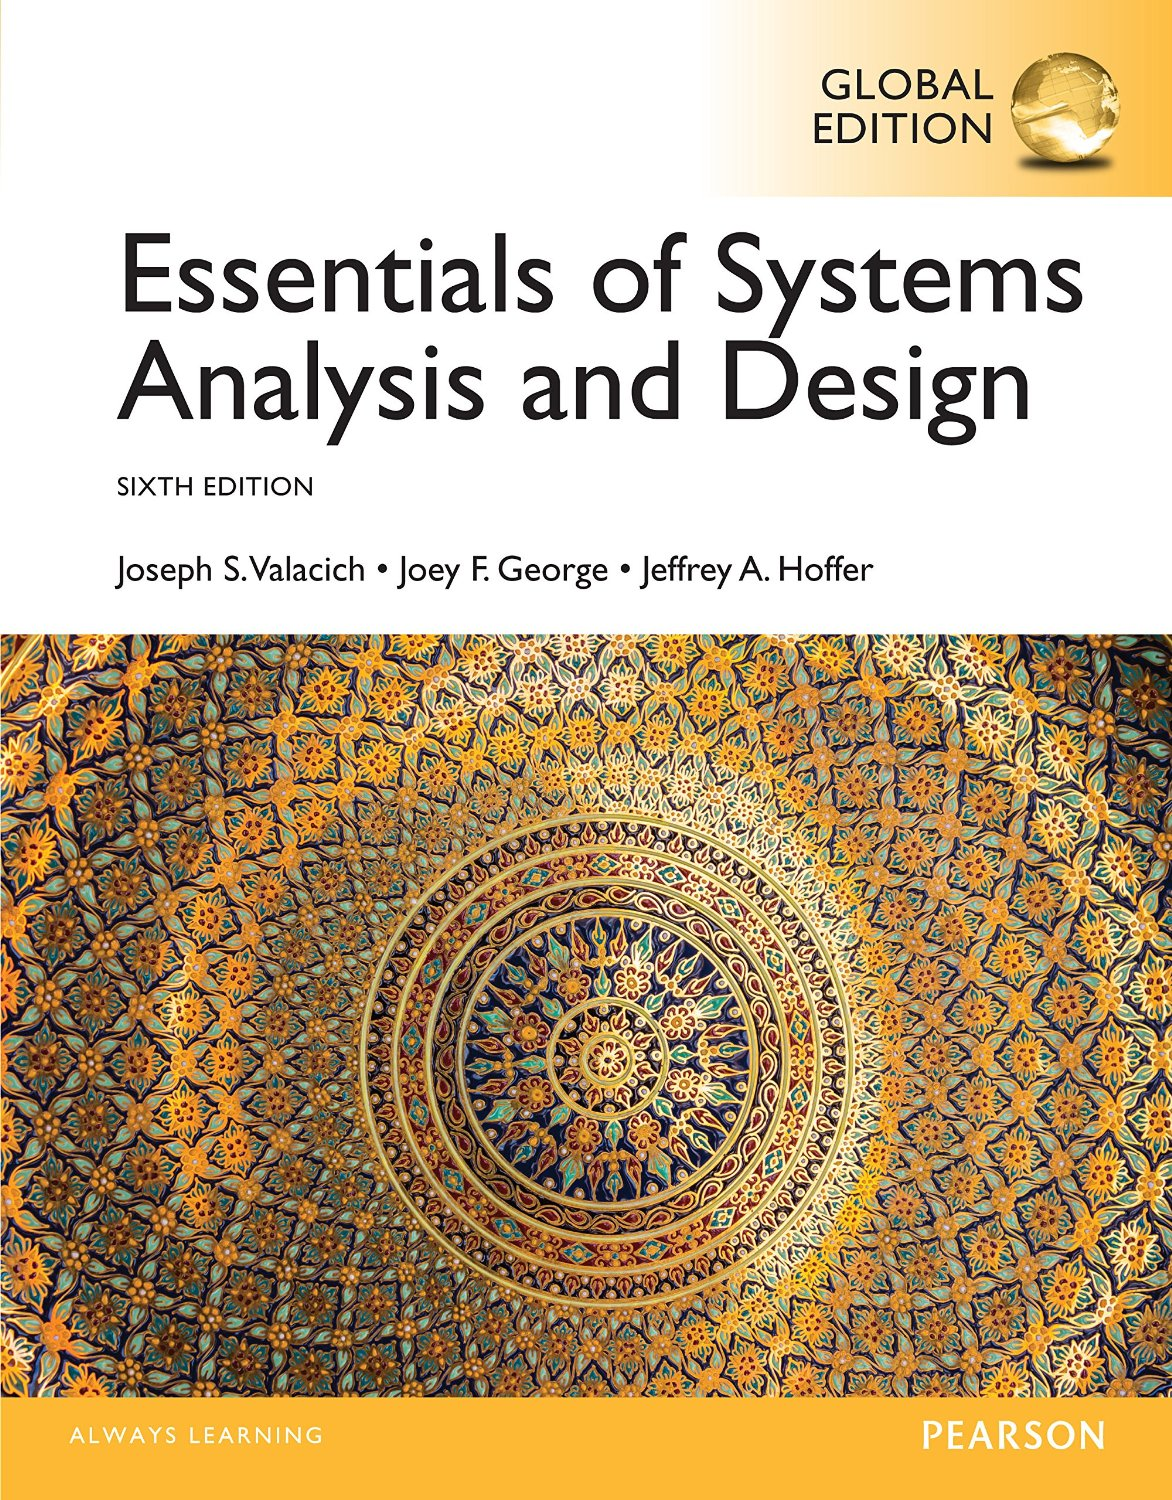 Systems pdf analysis and design of essentials